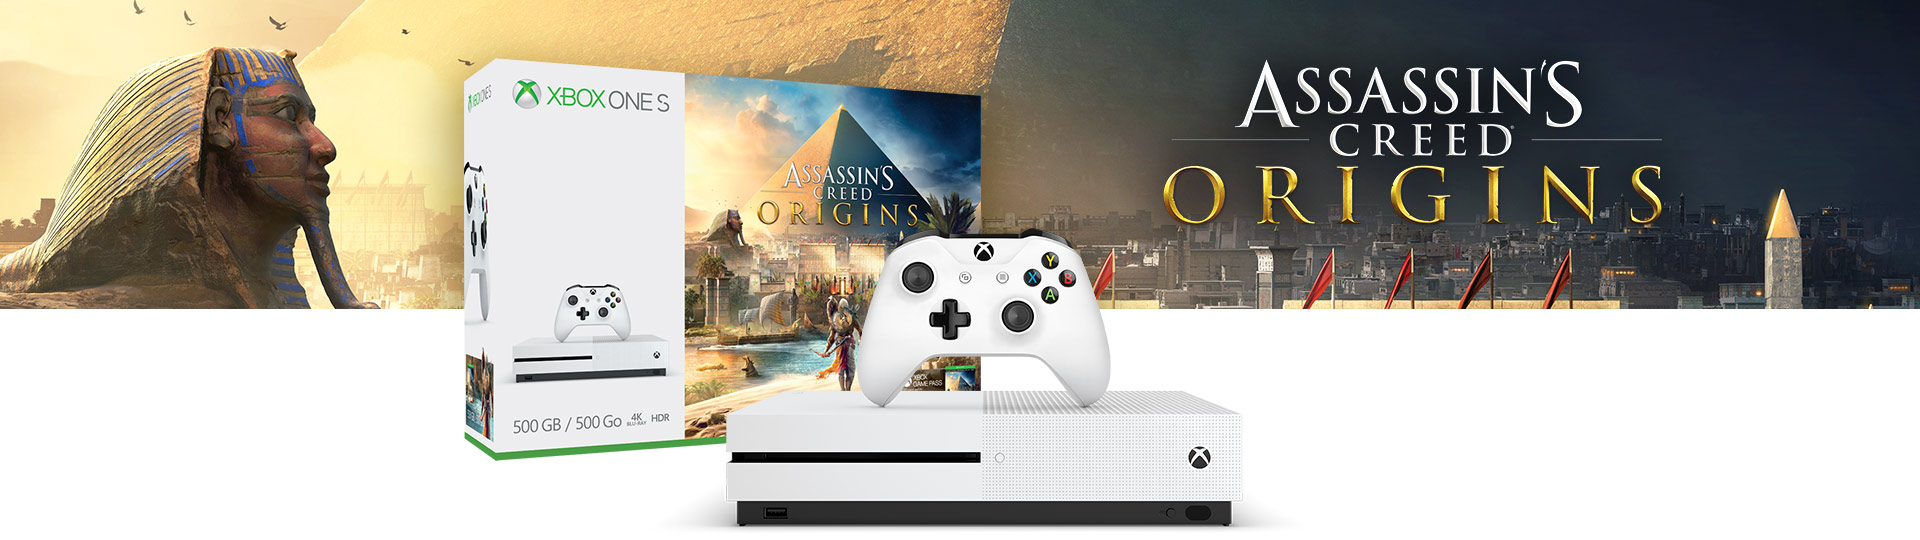 Xbox One S Assassin's Creed: Origins Bundle (500 GB)